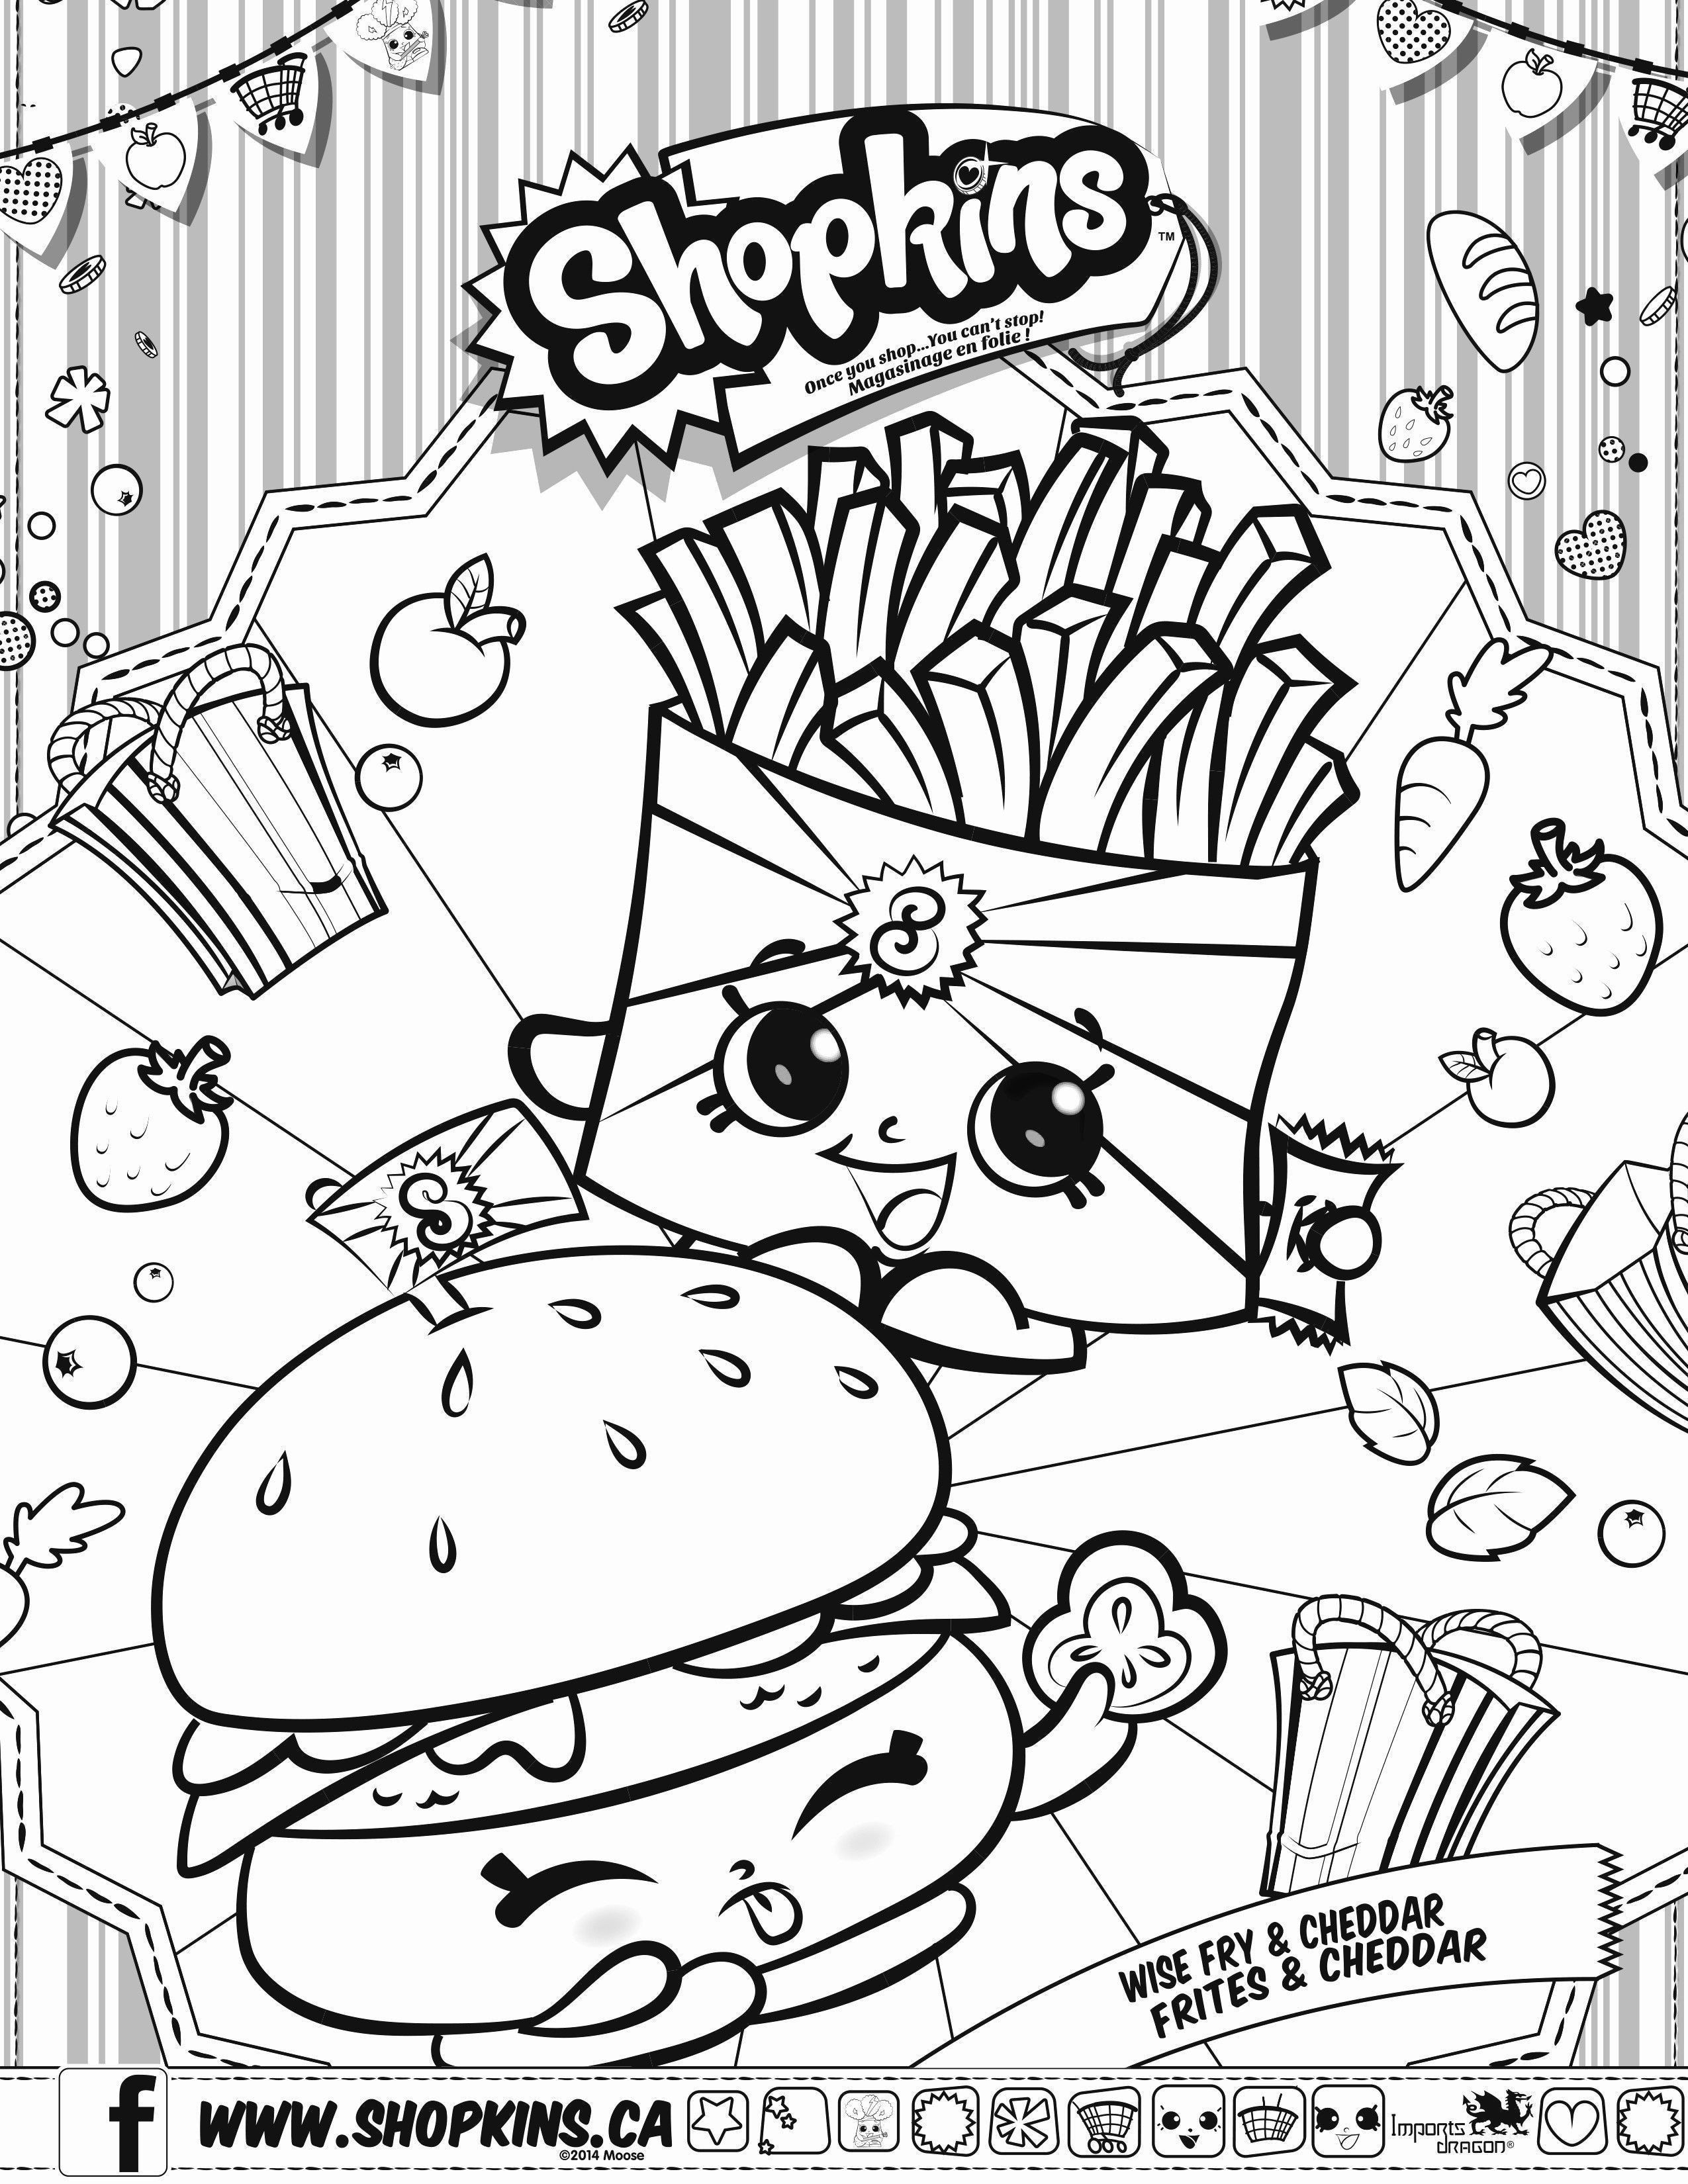 Coloring Pages My Little Pony Inspirational Ac Dc Colouring Pages Dc Burlingtonjs Org Valentine Coloring Pages Shopkins Colouring Pages Shopkin Coloring Pages